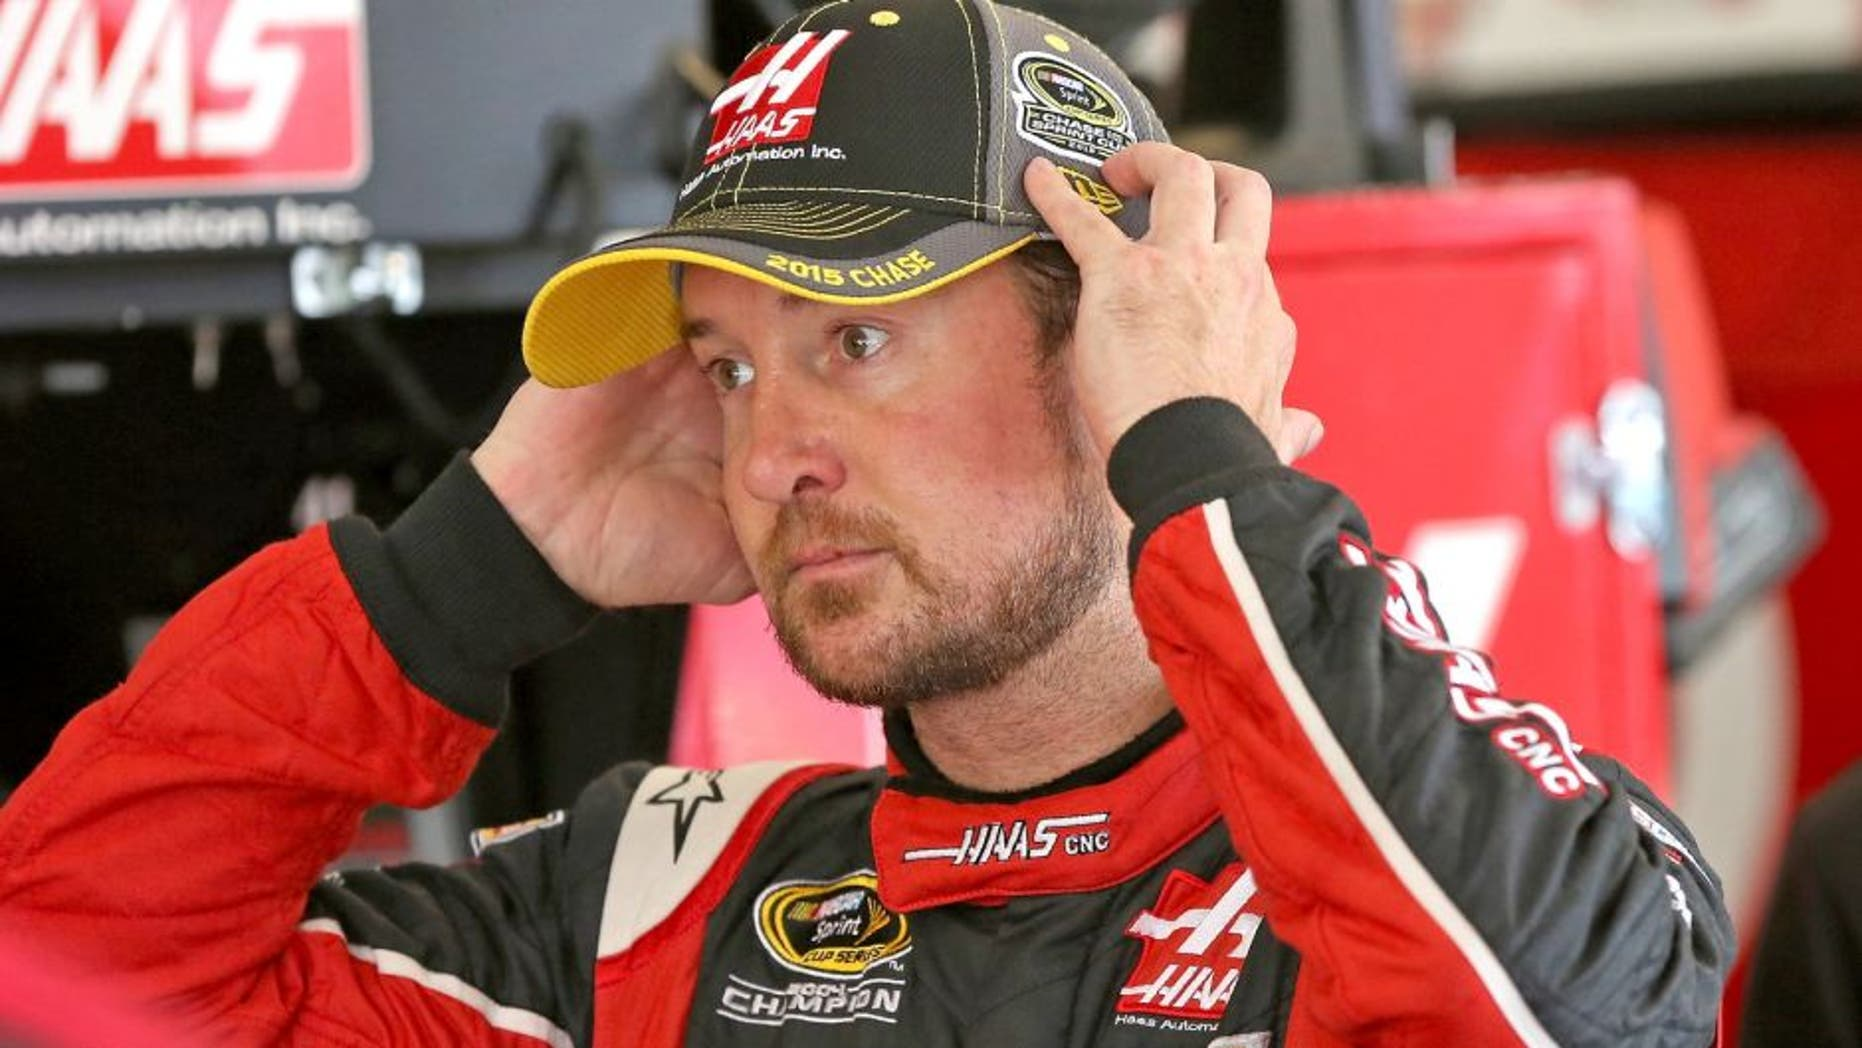 JOLIET, IL - SEPTEMBER 19: Kurt Busch, driver of the #41 Haas Automation Chevrolet, stands in the garage area during practice for the NASCAR Sprint Cup Series MyAFibRisk.com 400 at Chicagoland Speedway on September 19, 2015 in Joliet, Illinois. (Photo by Jonathan Daniel/Getty Images)